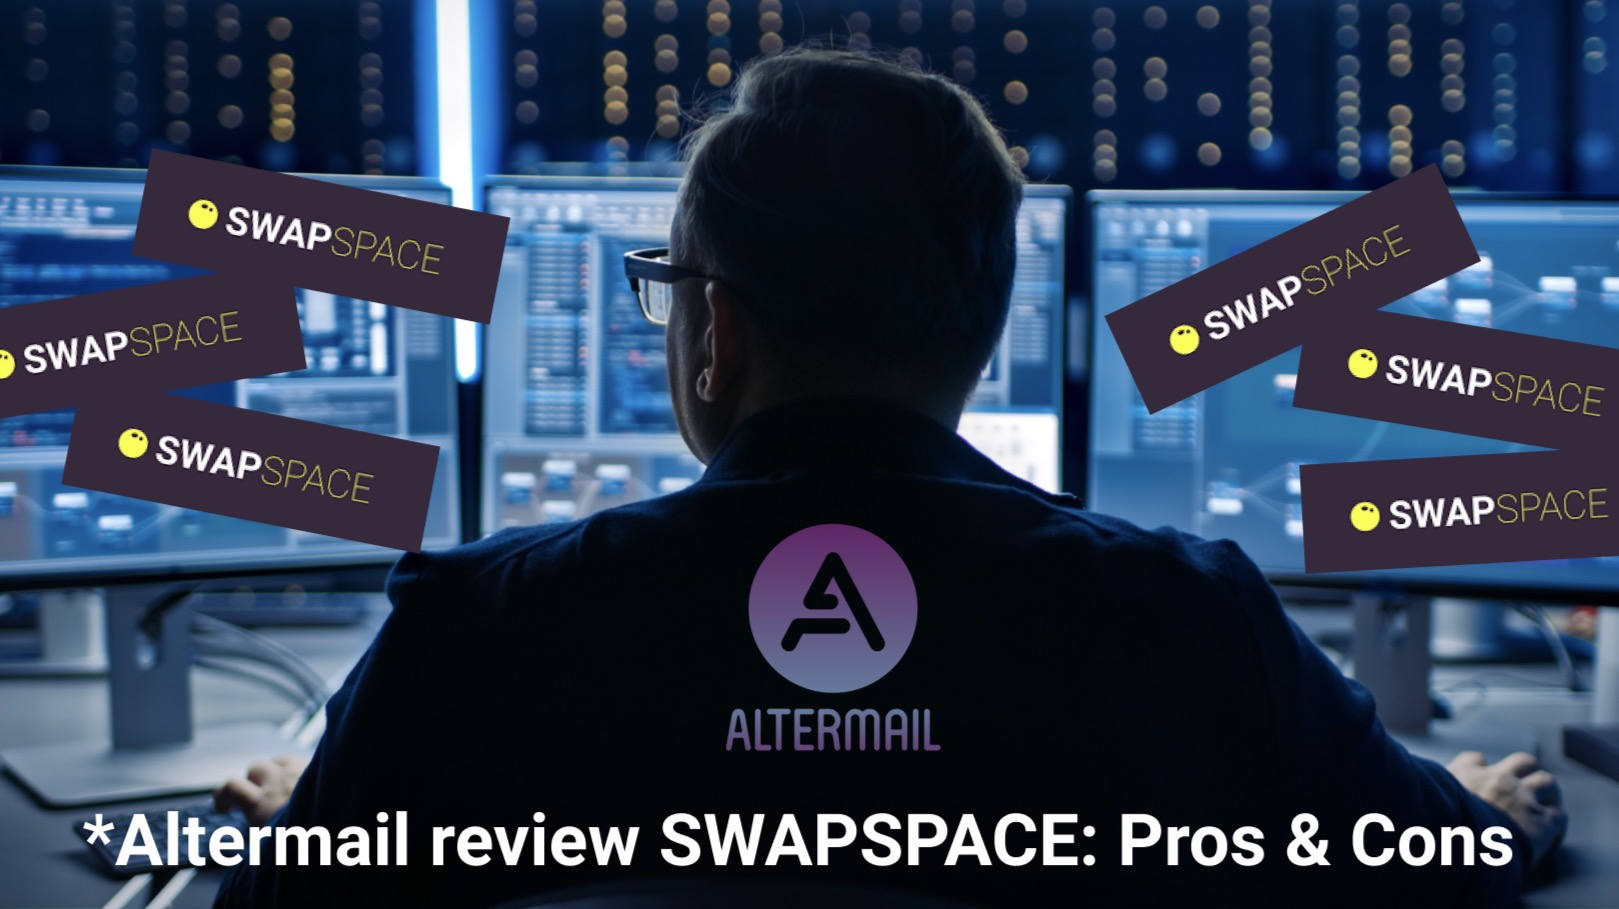 SwapSpaceExplained: Pros and Cons